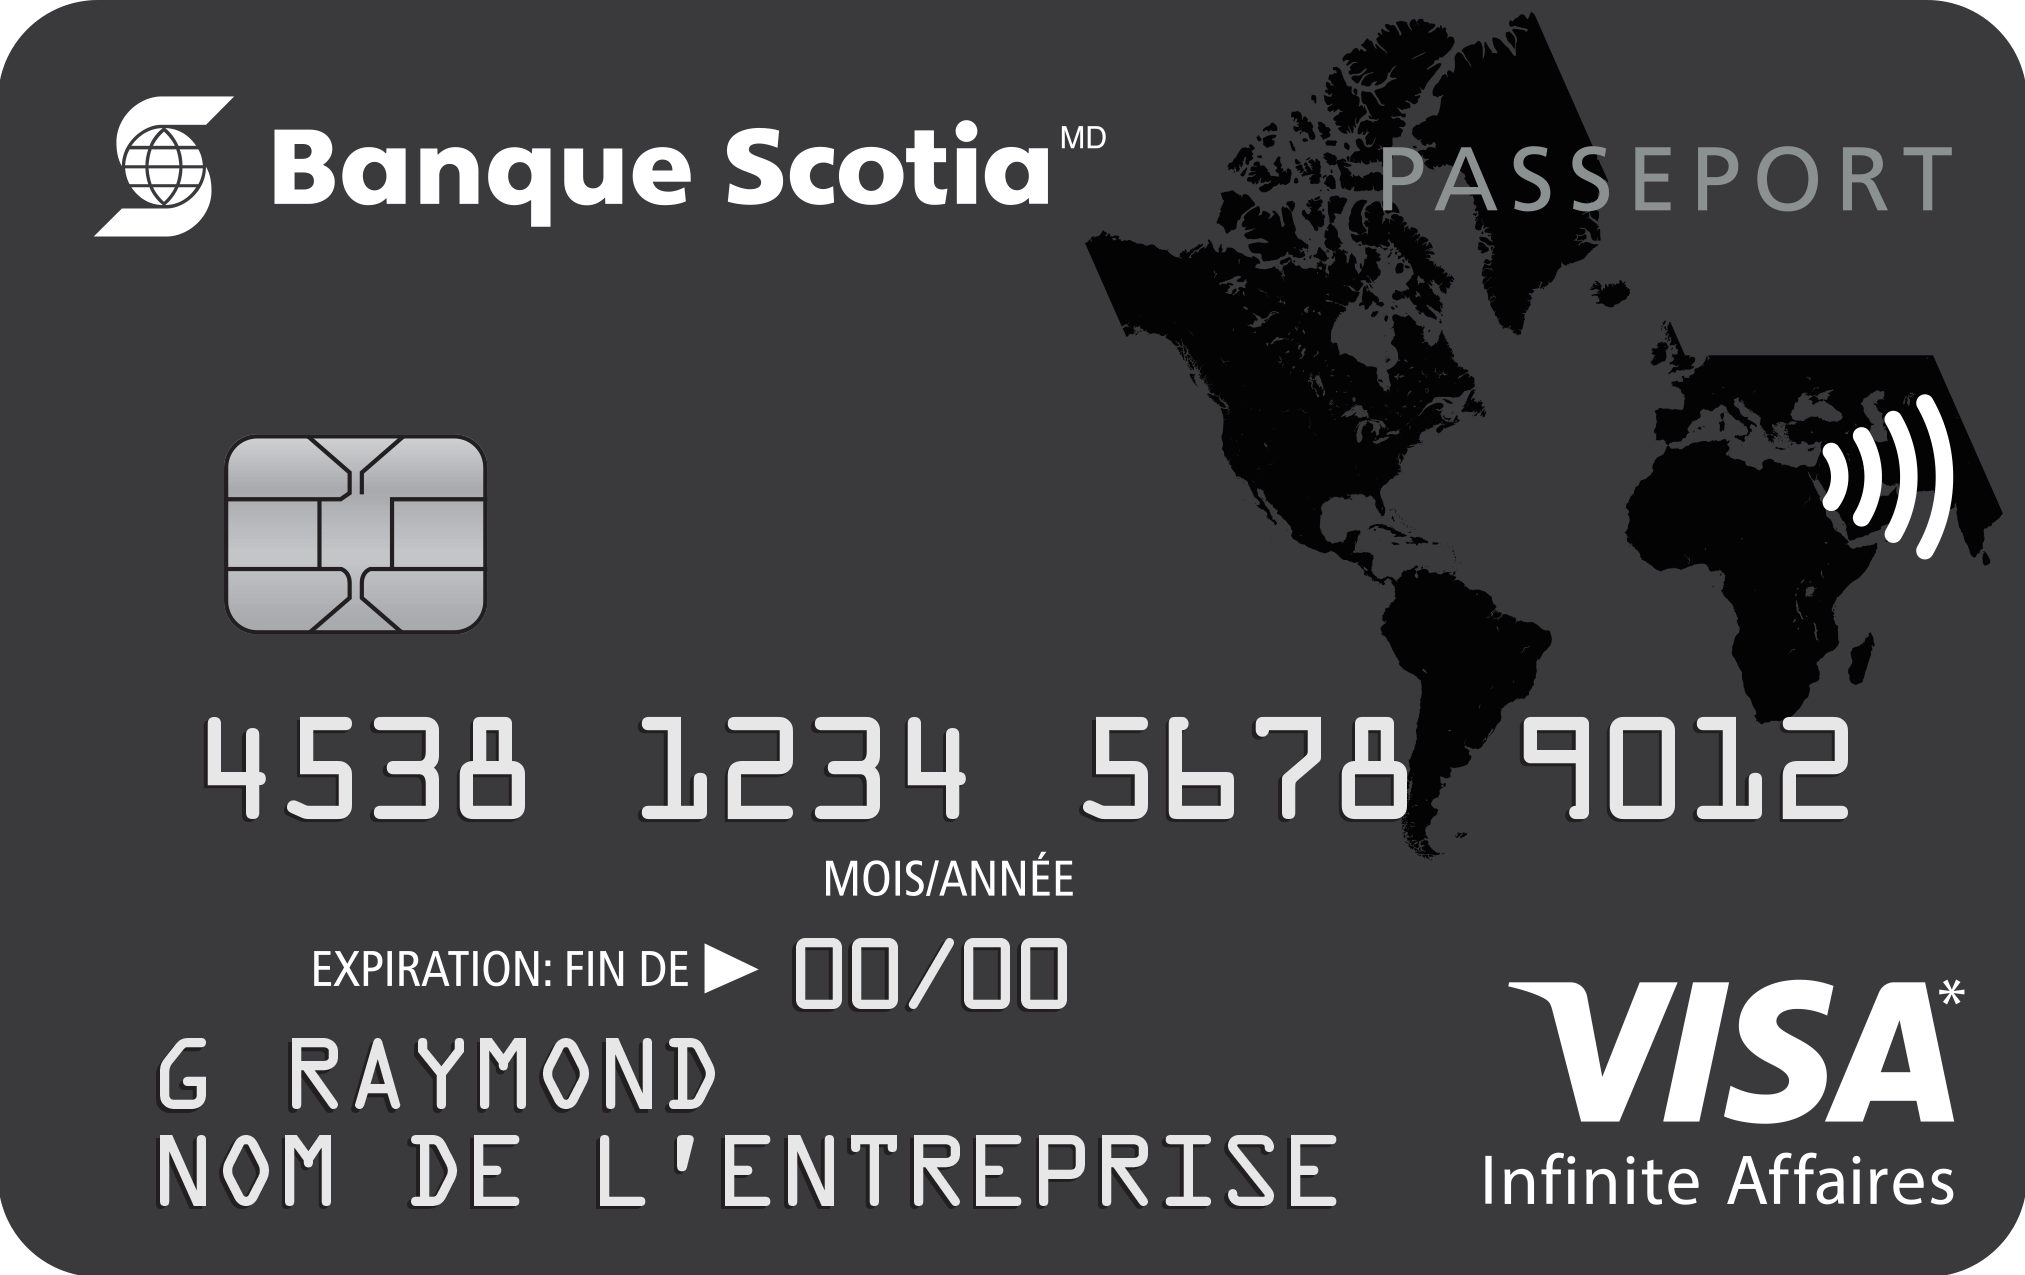 Carte Visa Infinite Affaires* PasseportMC Banque Scotia